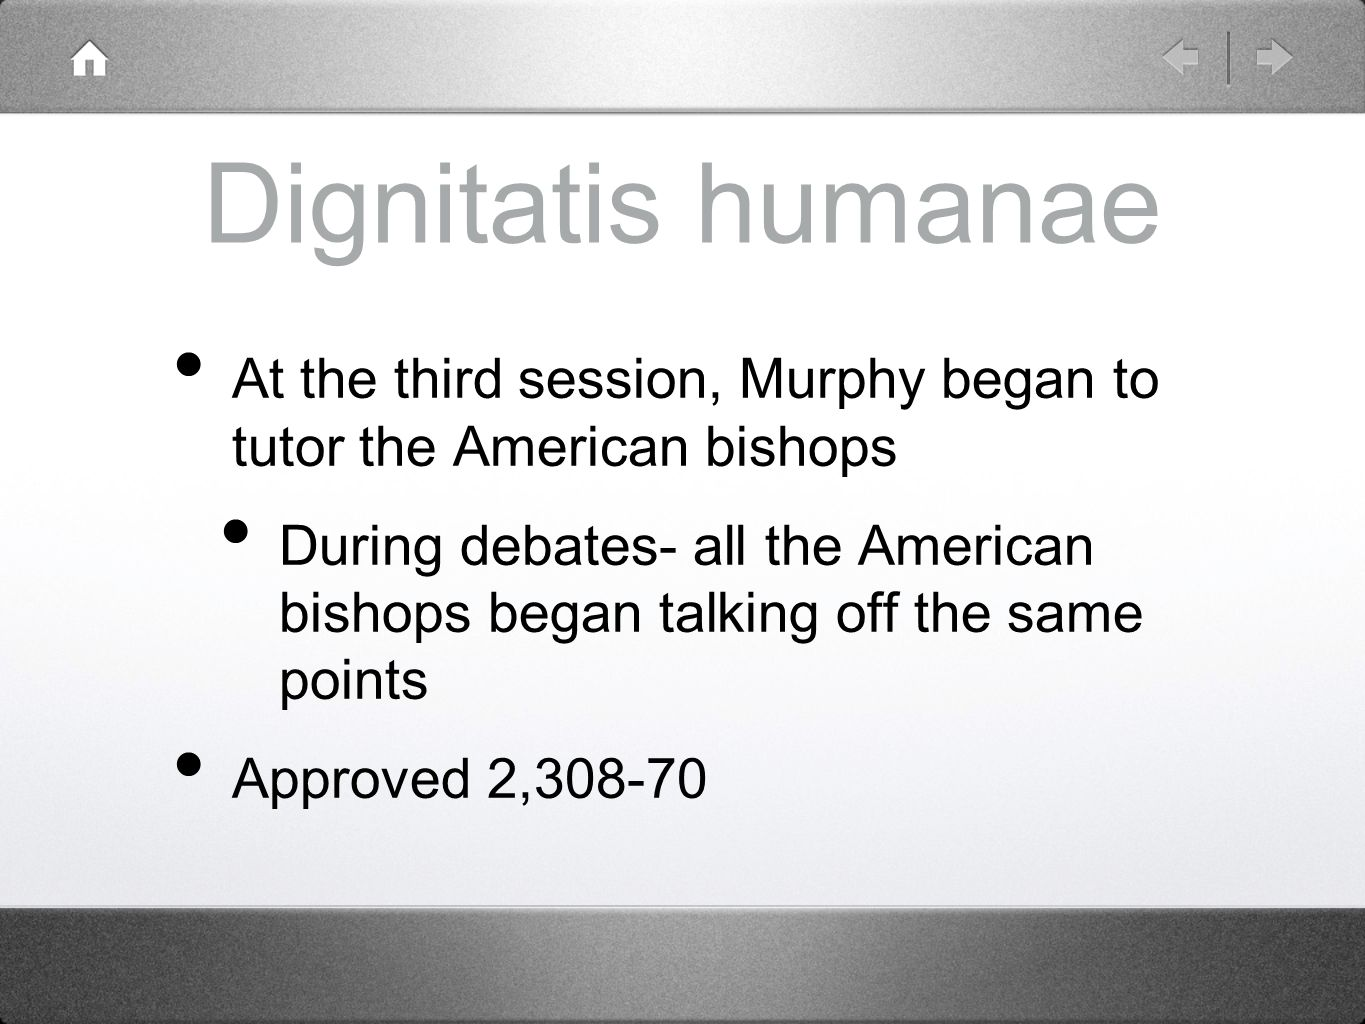 Dignitatis humanae At the third session, Murphy began to tutor the American bishops.